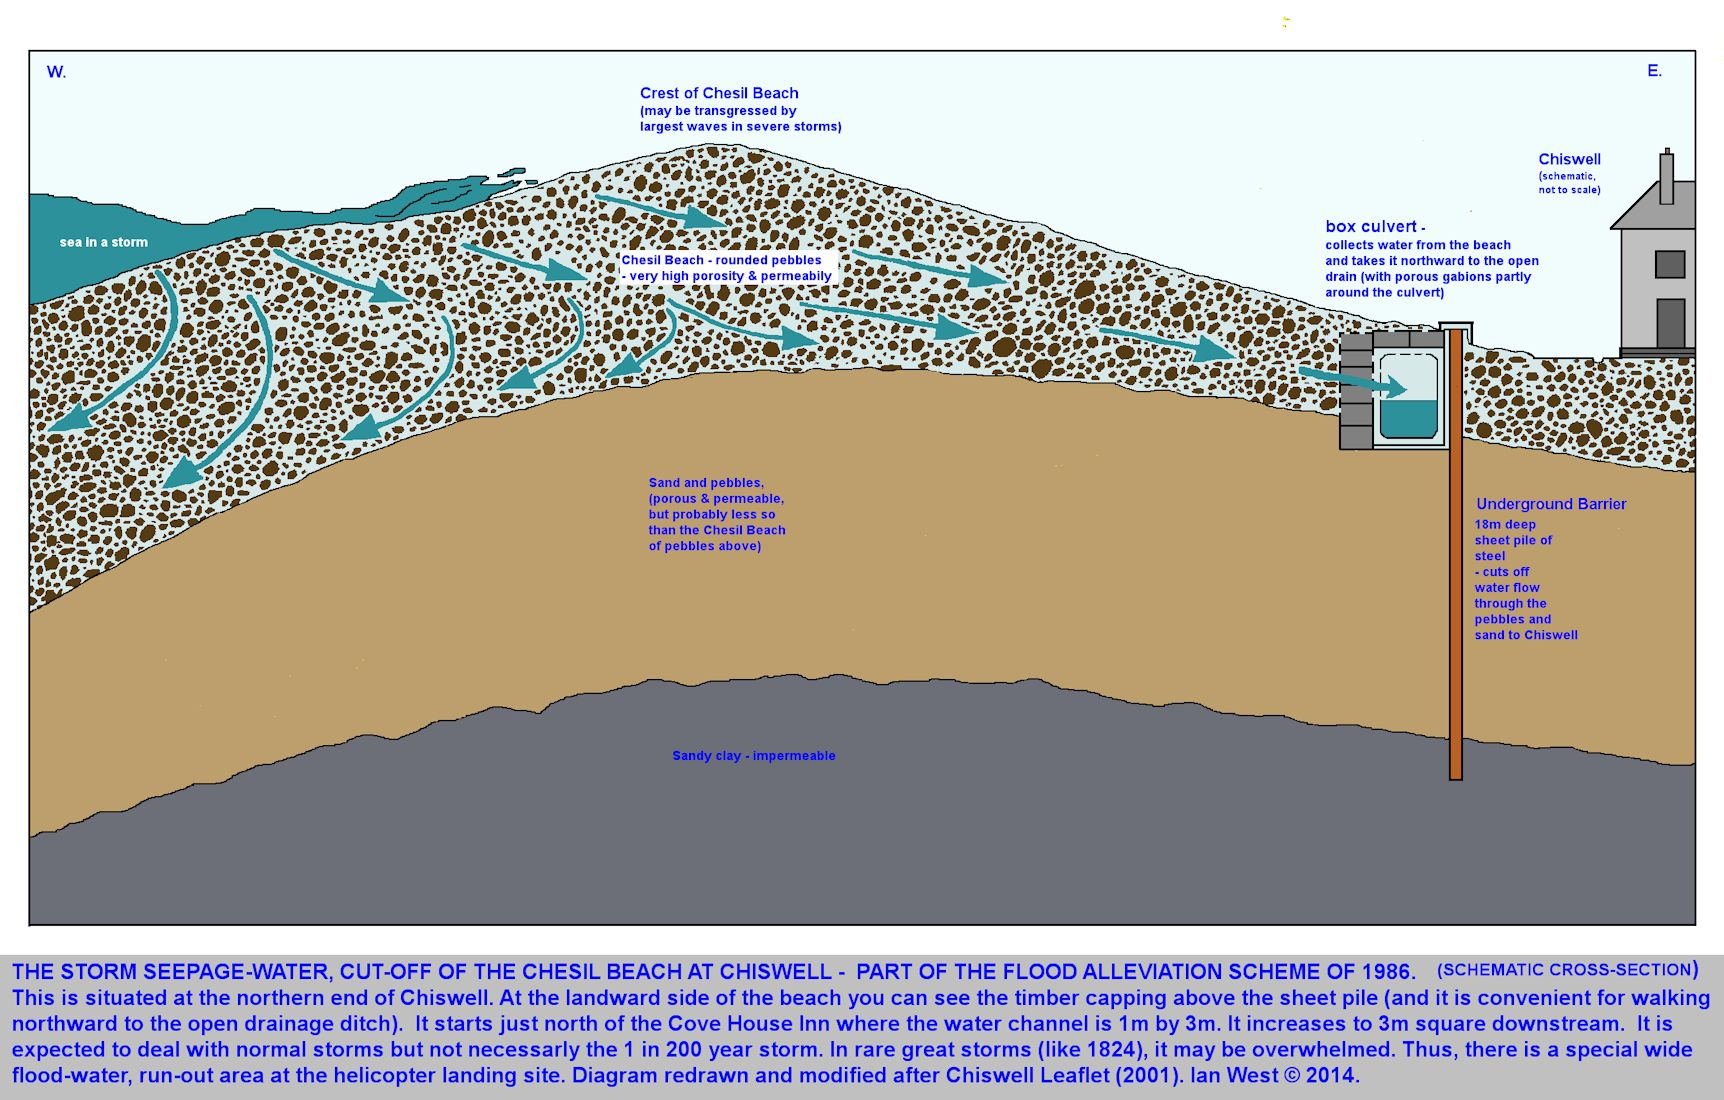 A schematic cross section of the Chesil Beach, just north of the Cove House Inn, to show the Flood Alleviation Scheme of 1986, which still operates, Isle of Portland, Dorset